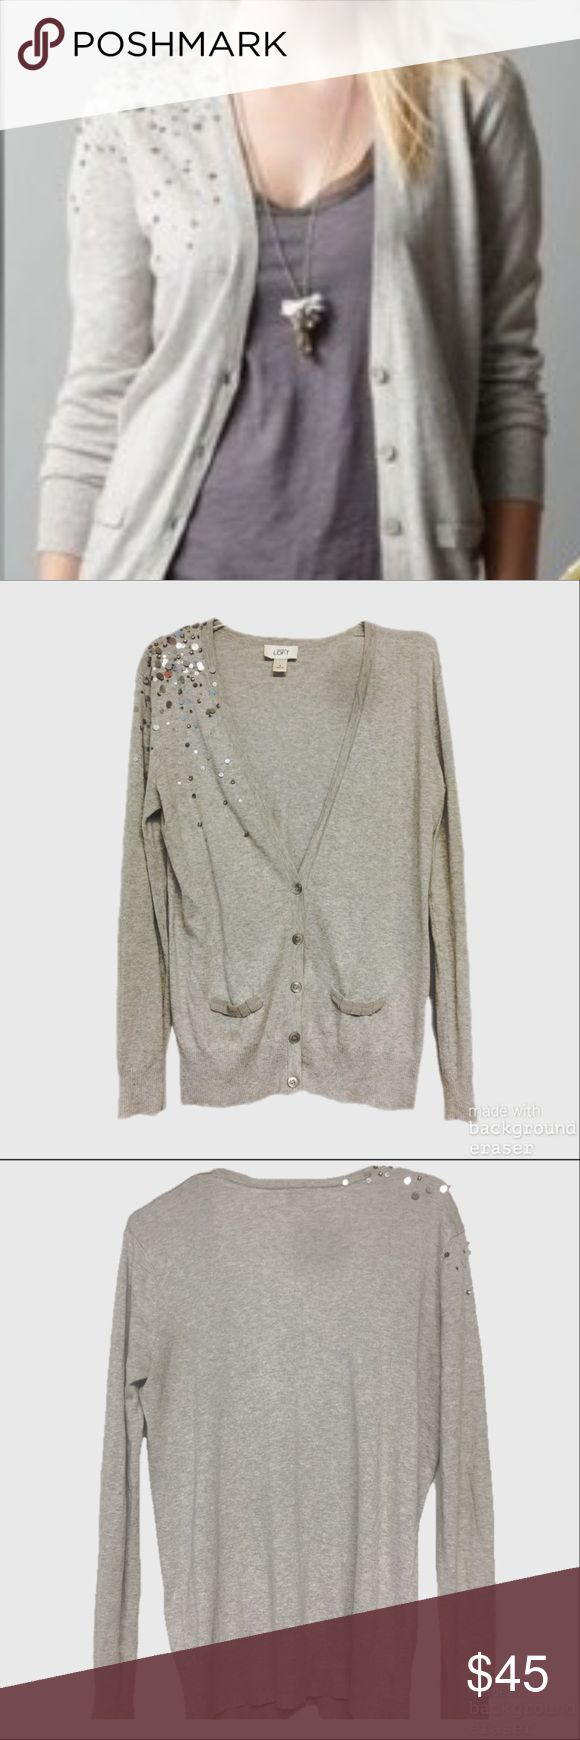 LOFT Sequin Cascade Cardigan This cardigan is sold out!!! Super cute v neck cardigan with cascading sequins and beads along one shoulder down to neckline. All sequins and beads in tact. Only flaw is a tiny pin size hole on sleeve near wrist which is not noticeable when wearing. LOFT Sweaters Cardigans